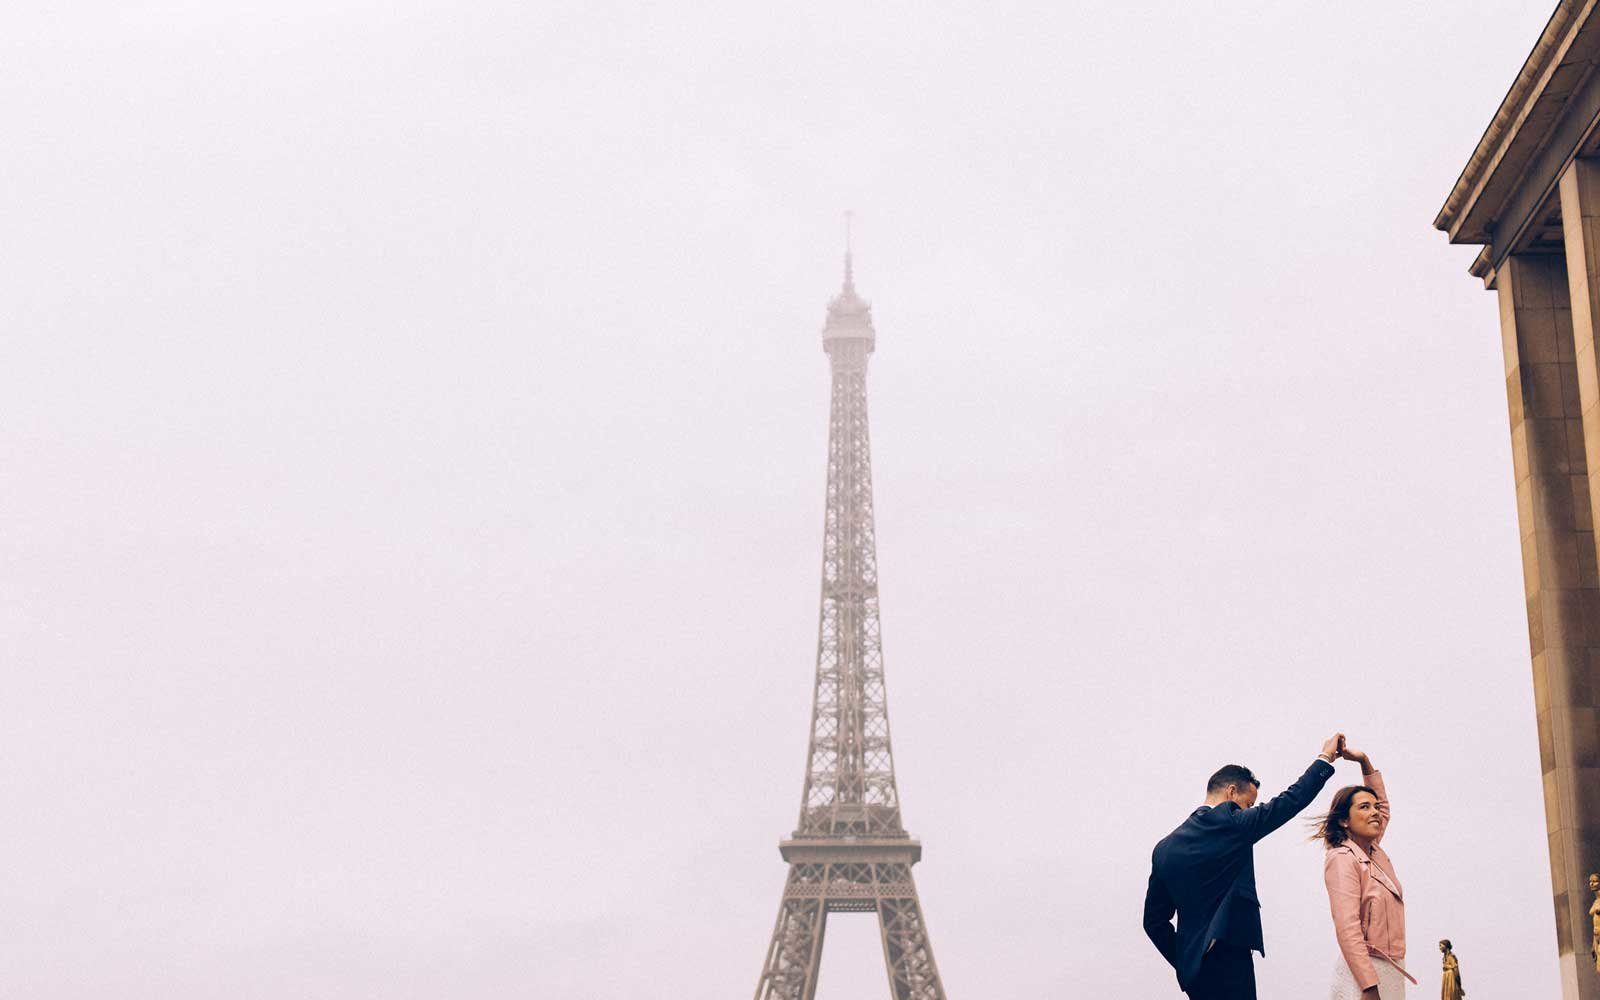 Couple dancing in front of the Eiffel Tower in Paris, France